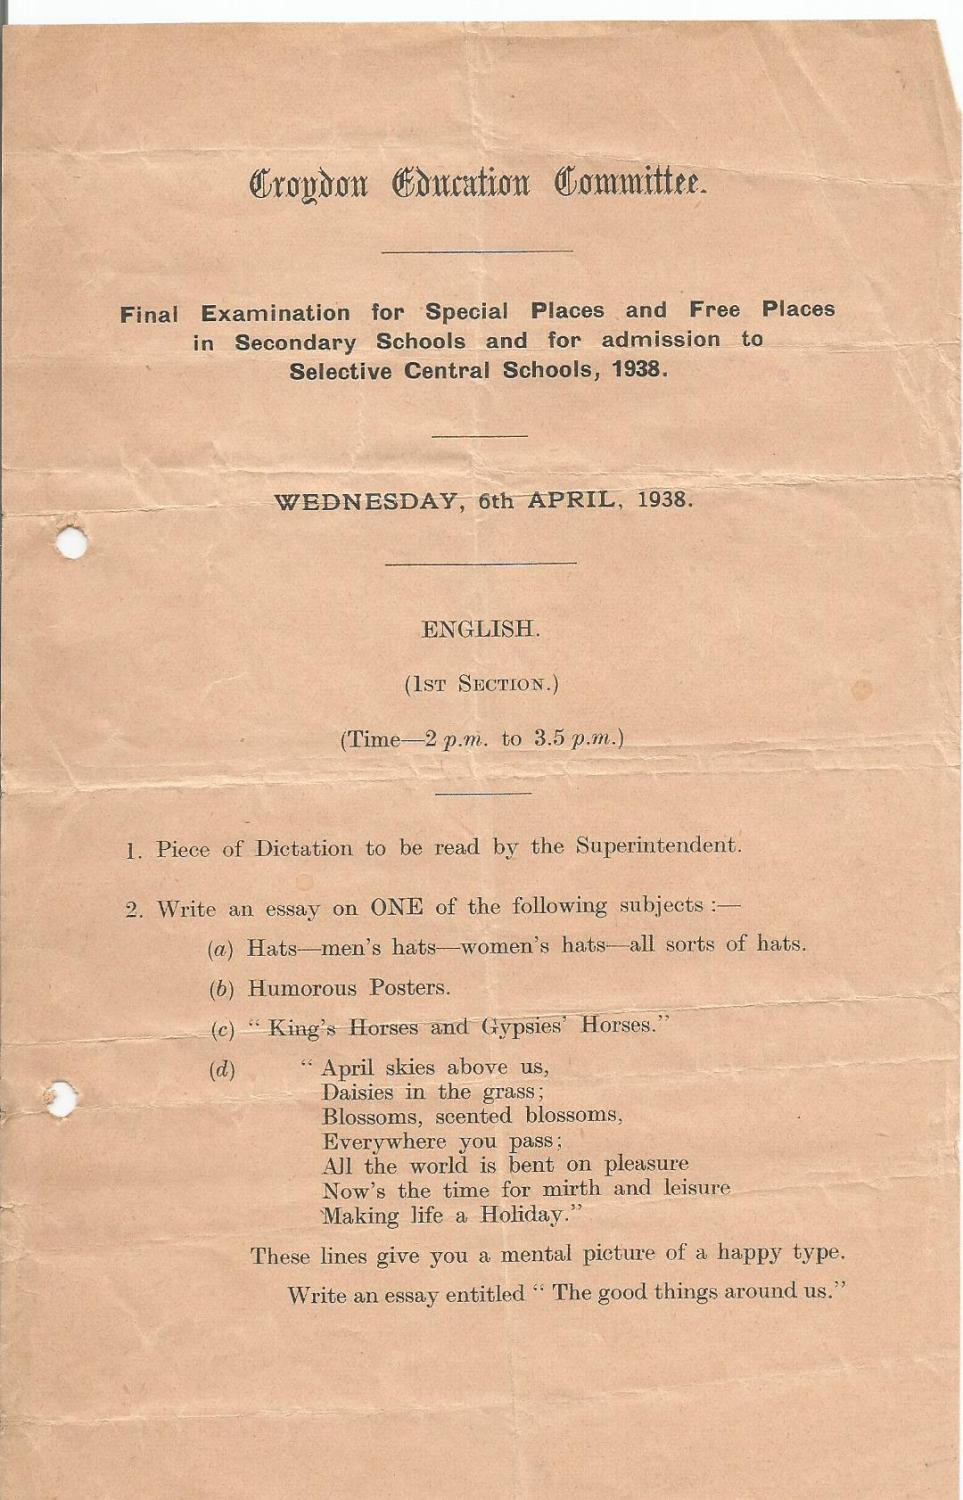 english section 1 final entrance exam 6.4.1938